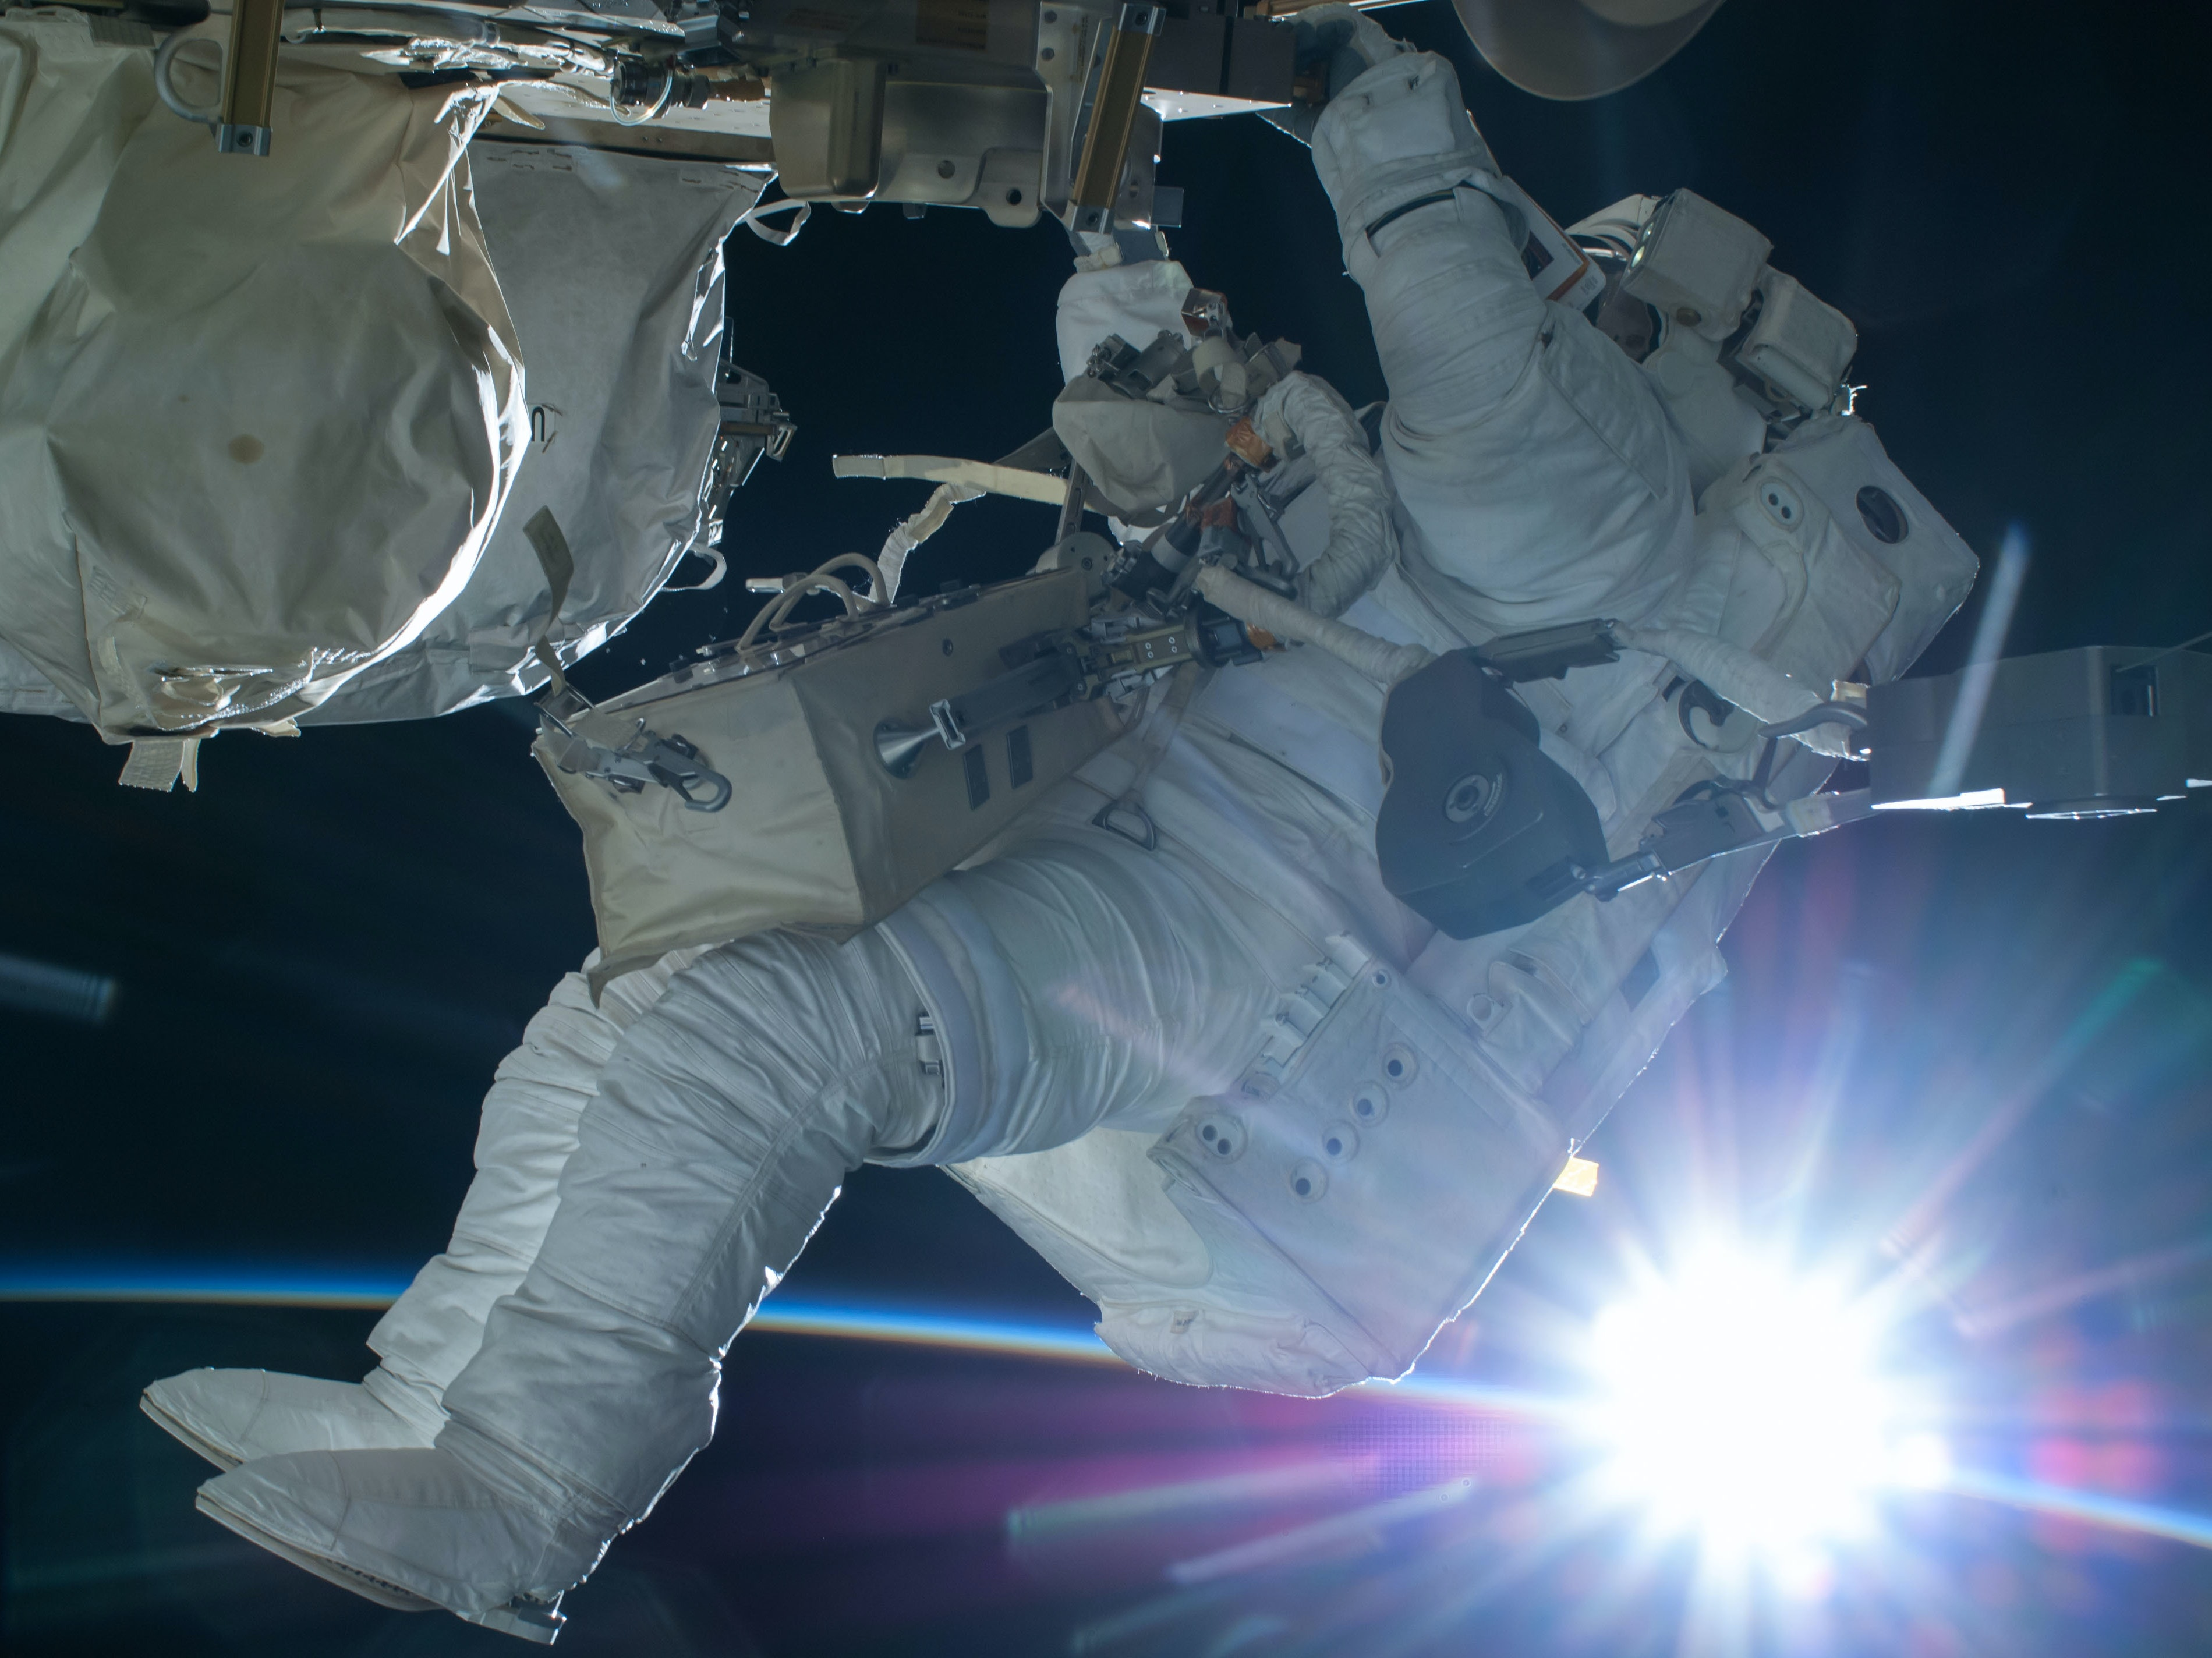 NASA Called for Astronauts, and Americans Applied in Record Numbers